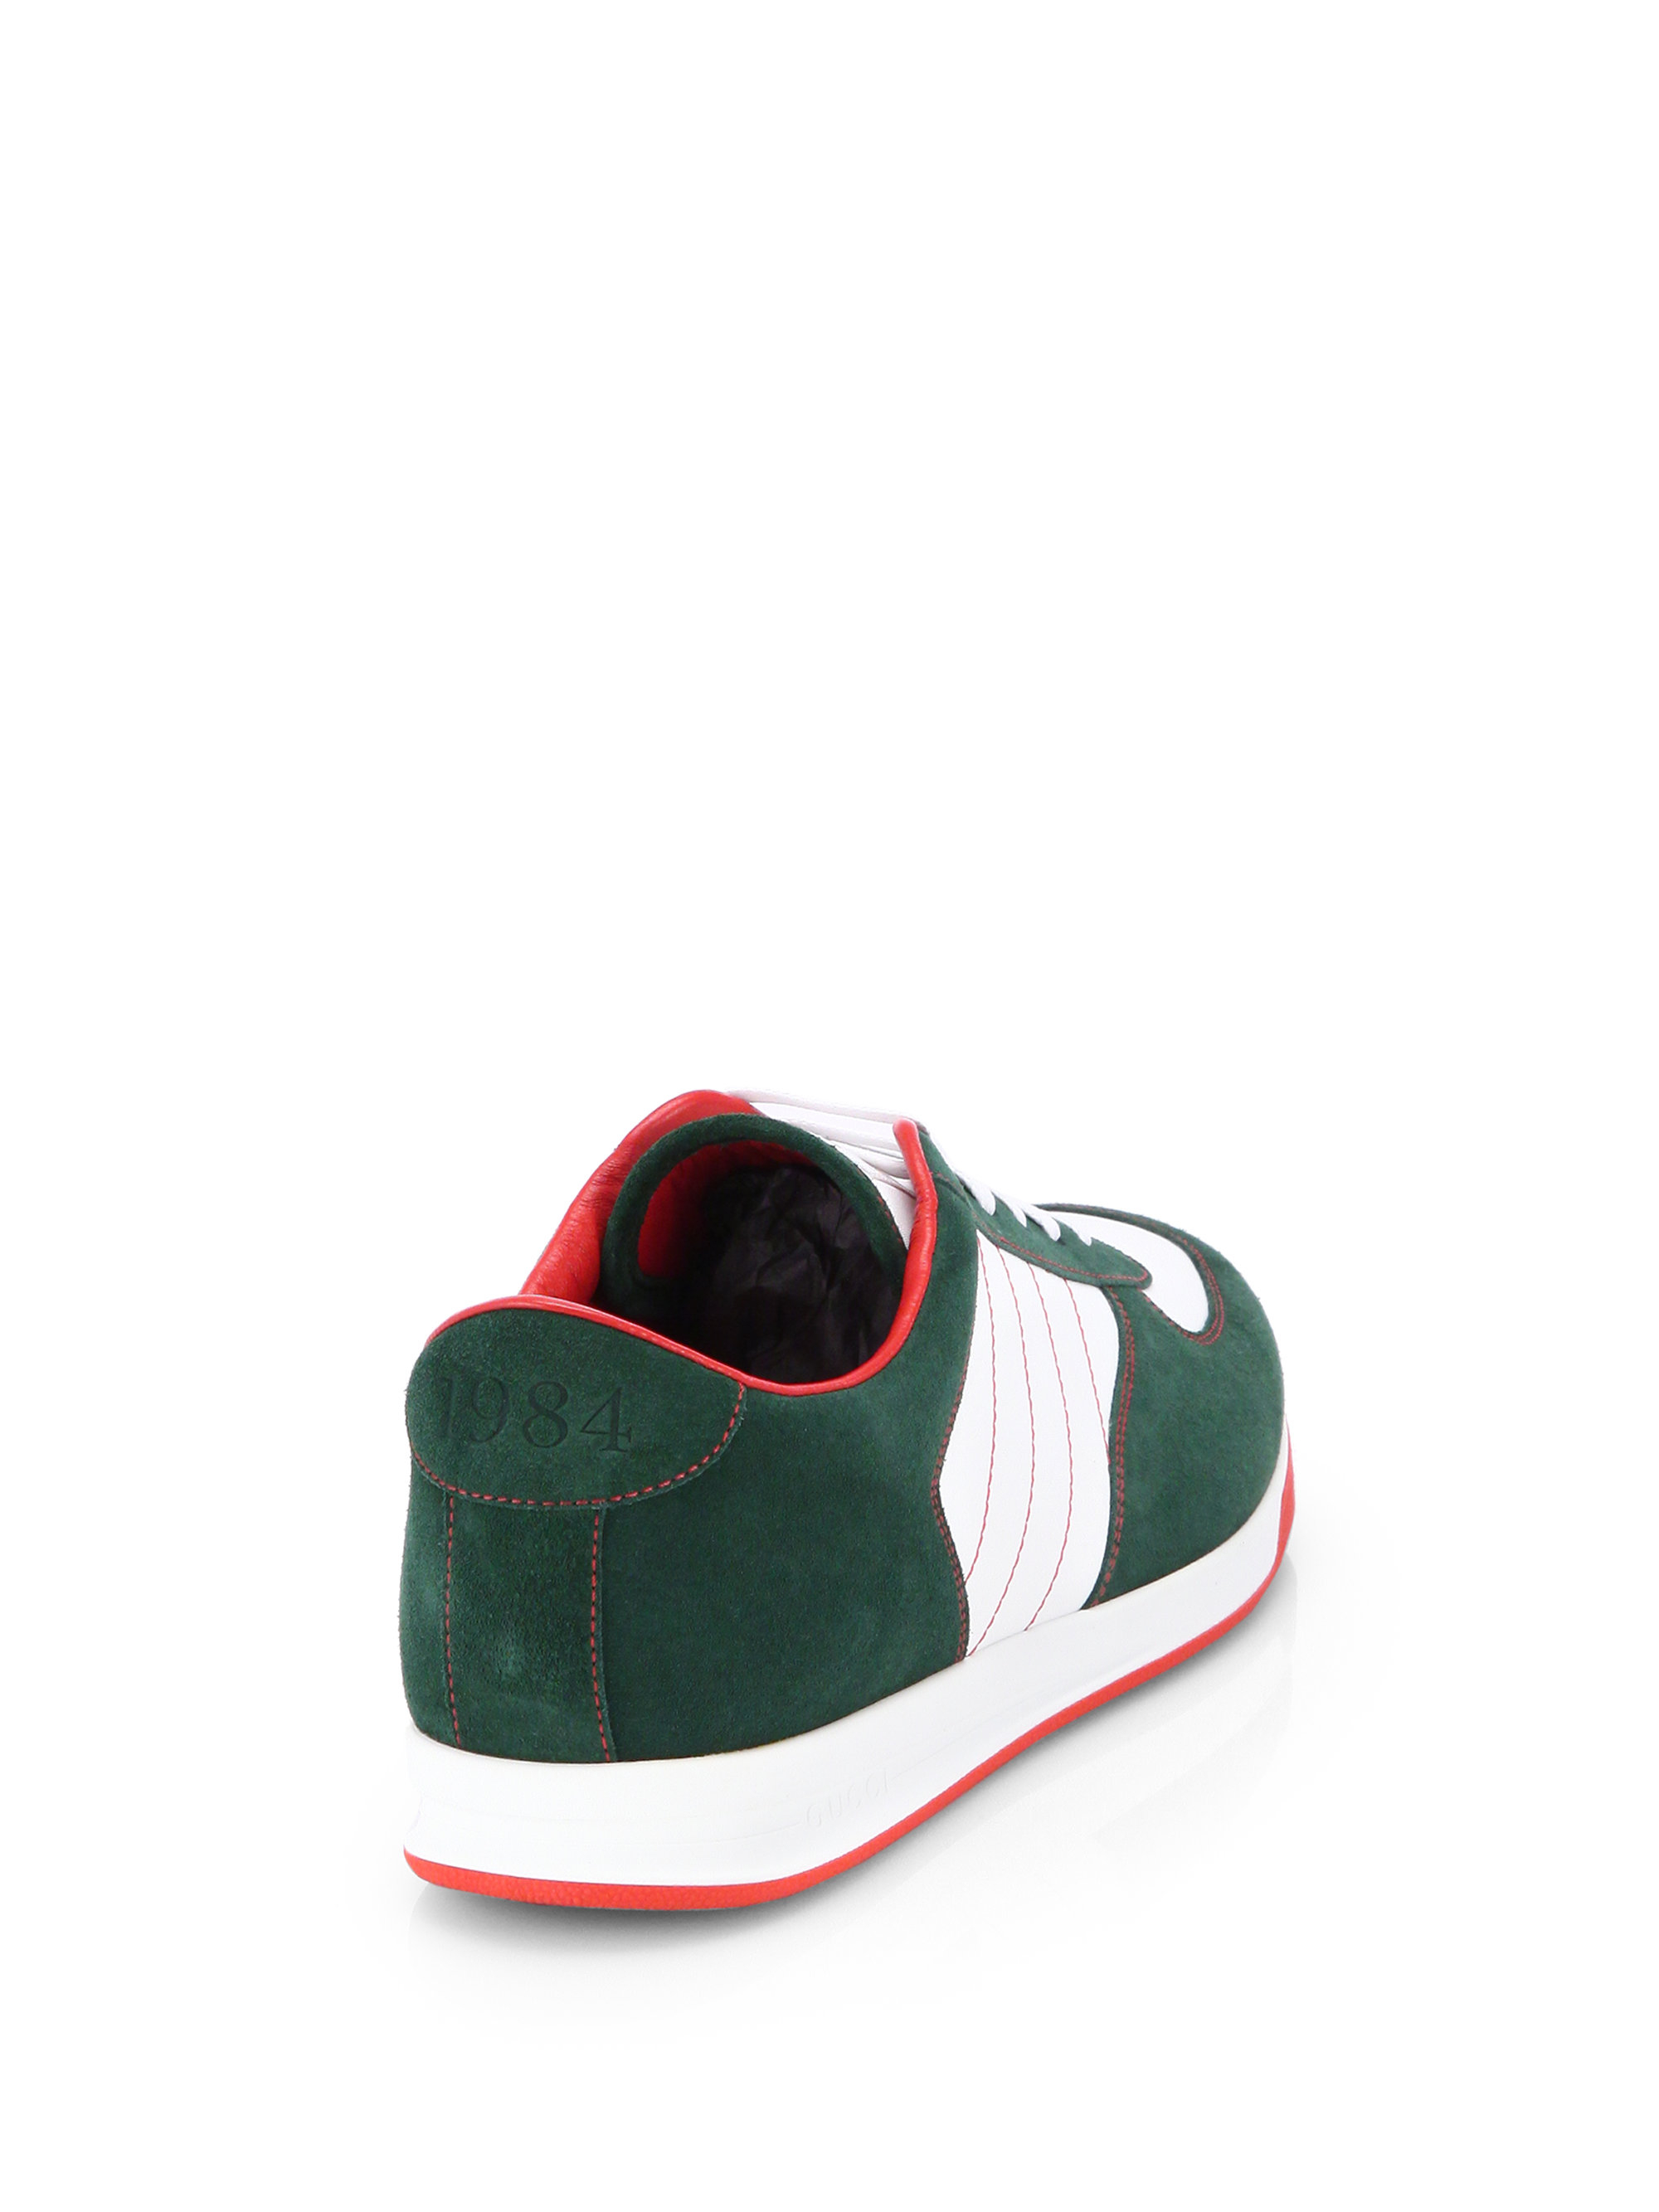 d38fdf8f076 Lyst - Gucci Suede Anniversary Sneakers in Green for Men